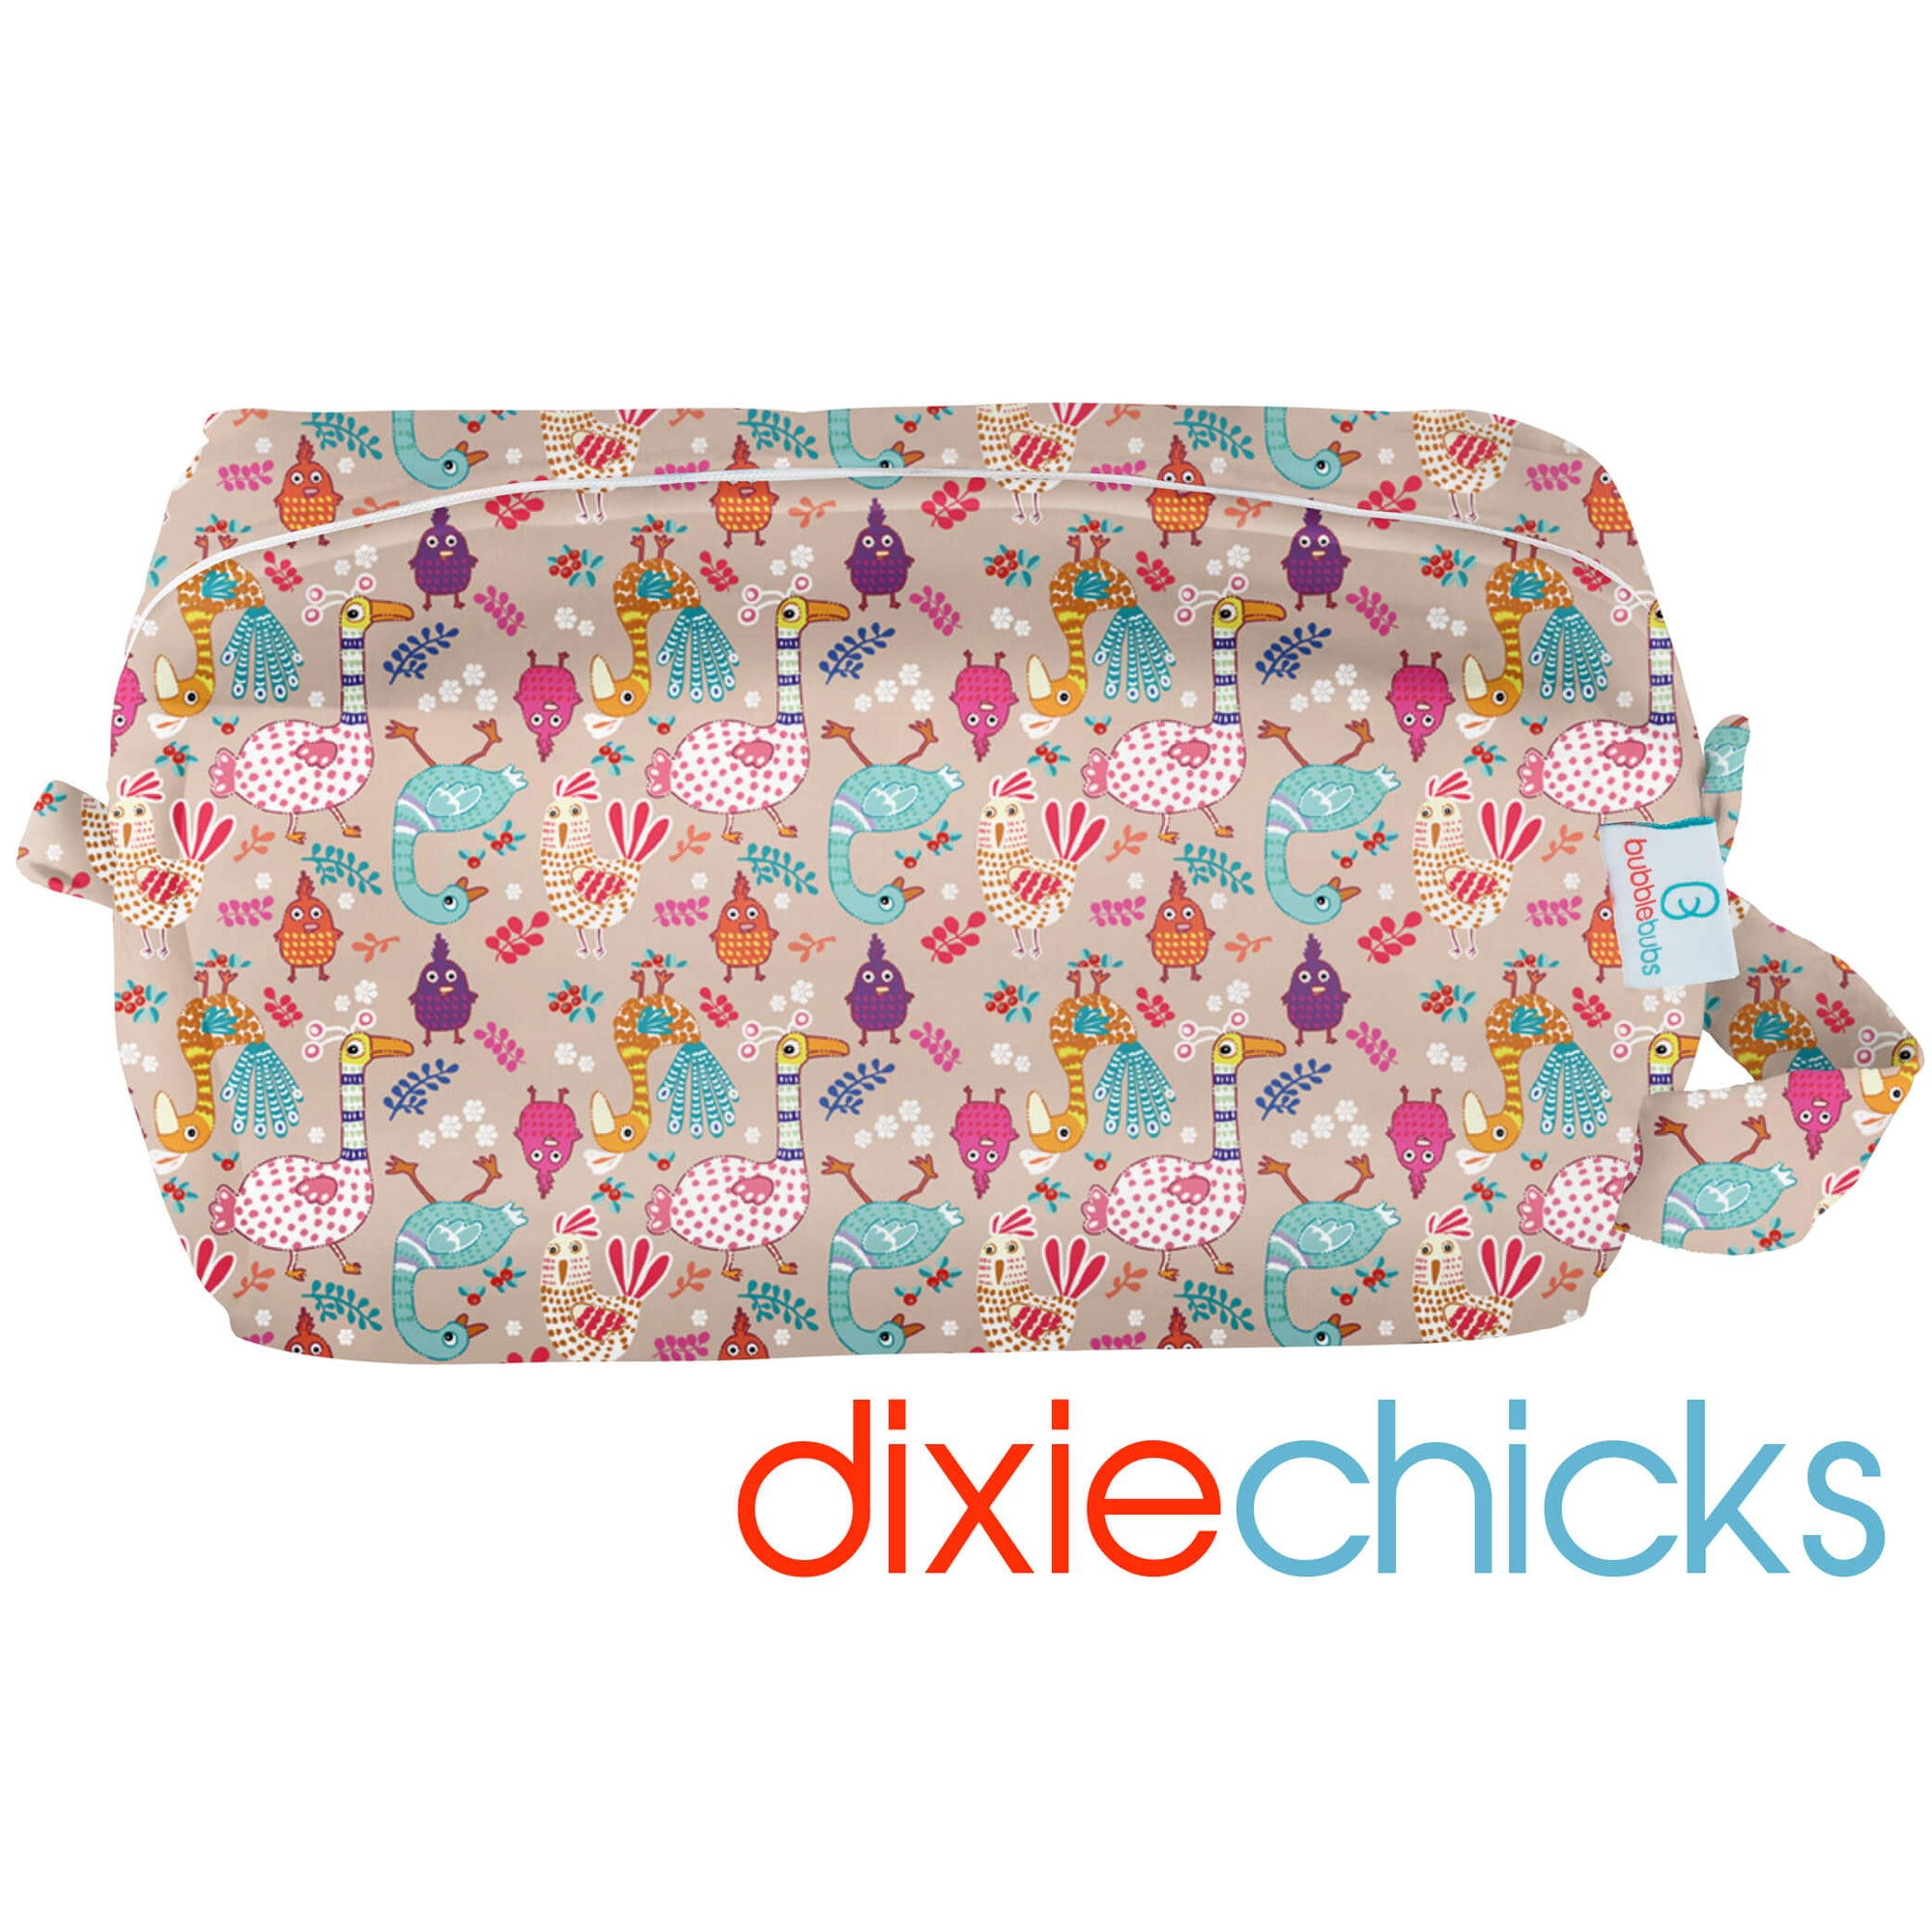 Dixie Chicks PUL Candie Pod Wetbag